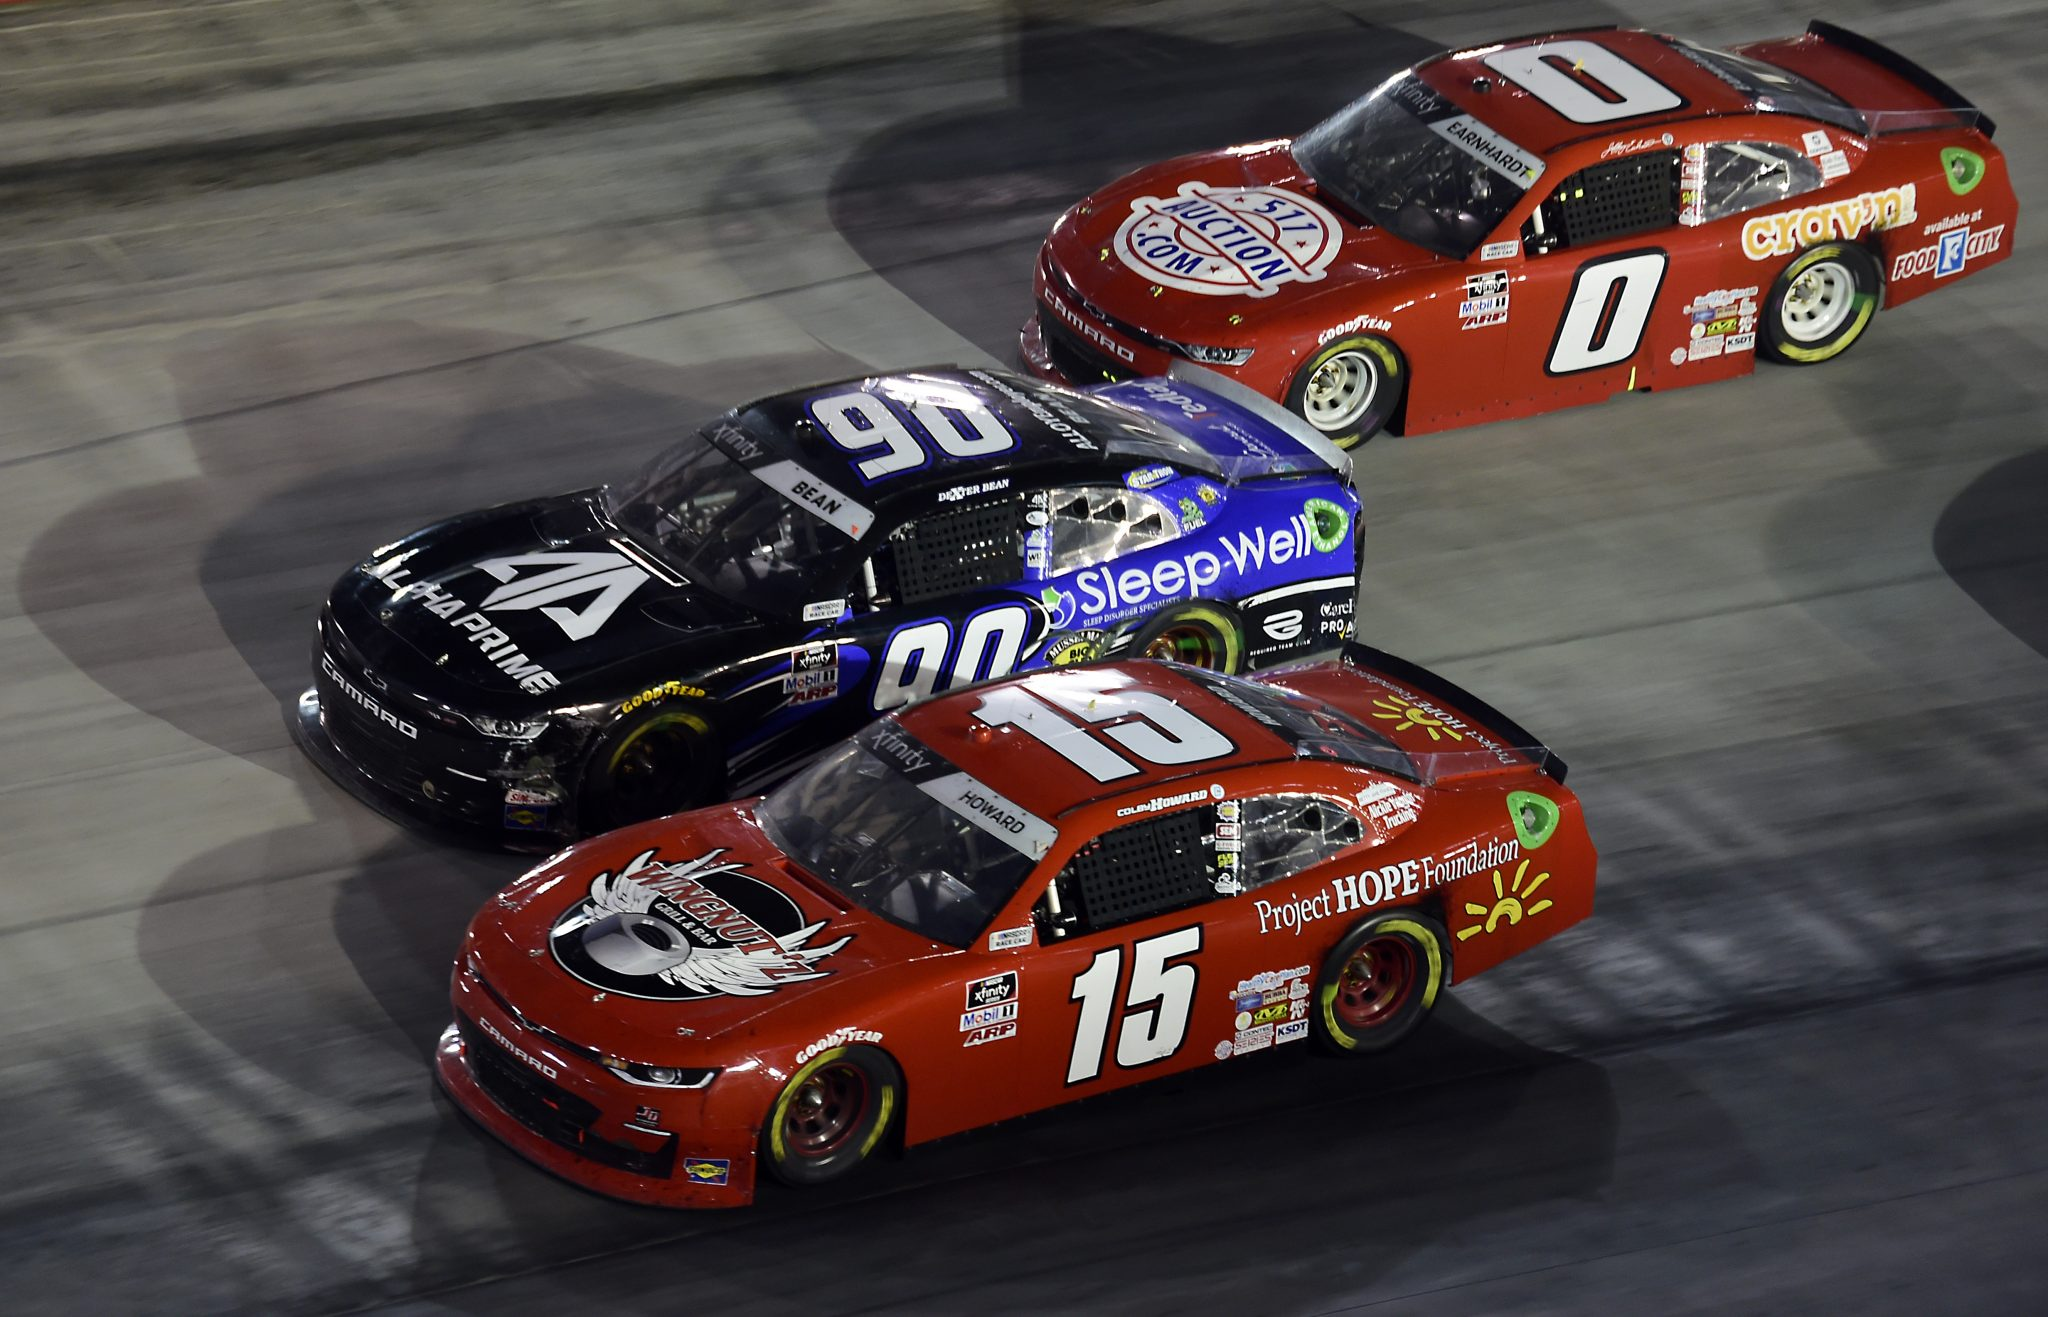 BRISTOL, TENNESSEE - SEPTEMBER 18: Colby Howard, driver of the #15 Project Hope Foundation Chevrolet, Dexter Bean, driver of the #90 Sleep Well/Alpha Prime Chevrolet, and Jeffrey Earnhardt, driver of the #0 511Auction.com Chevrolet, race during the NASCAR Xfinity Series Food City 300 at Bristol Motor Speedway on September 18, 2020 in Bristol, Tennessee. (Photo by Jared C. Tilton/Getty Images)   Getty Images